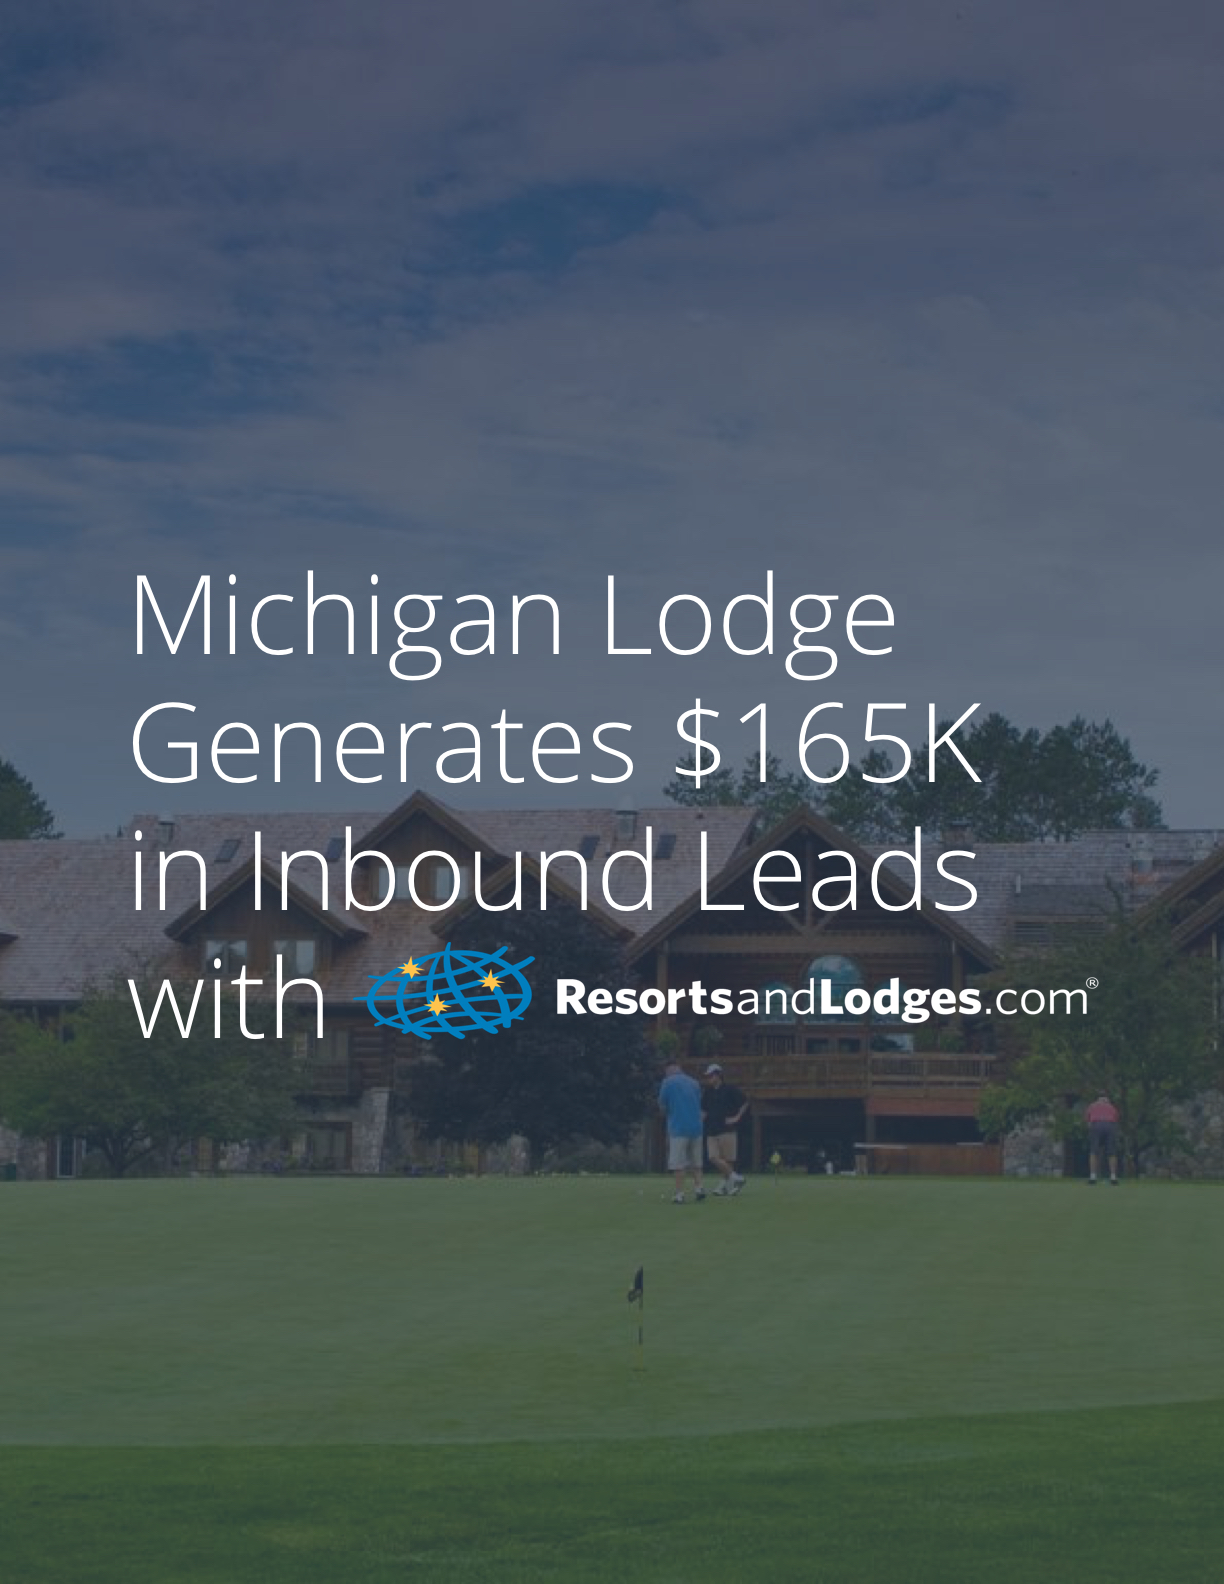 Michigan Garland Lodge Case Study